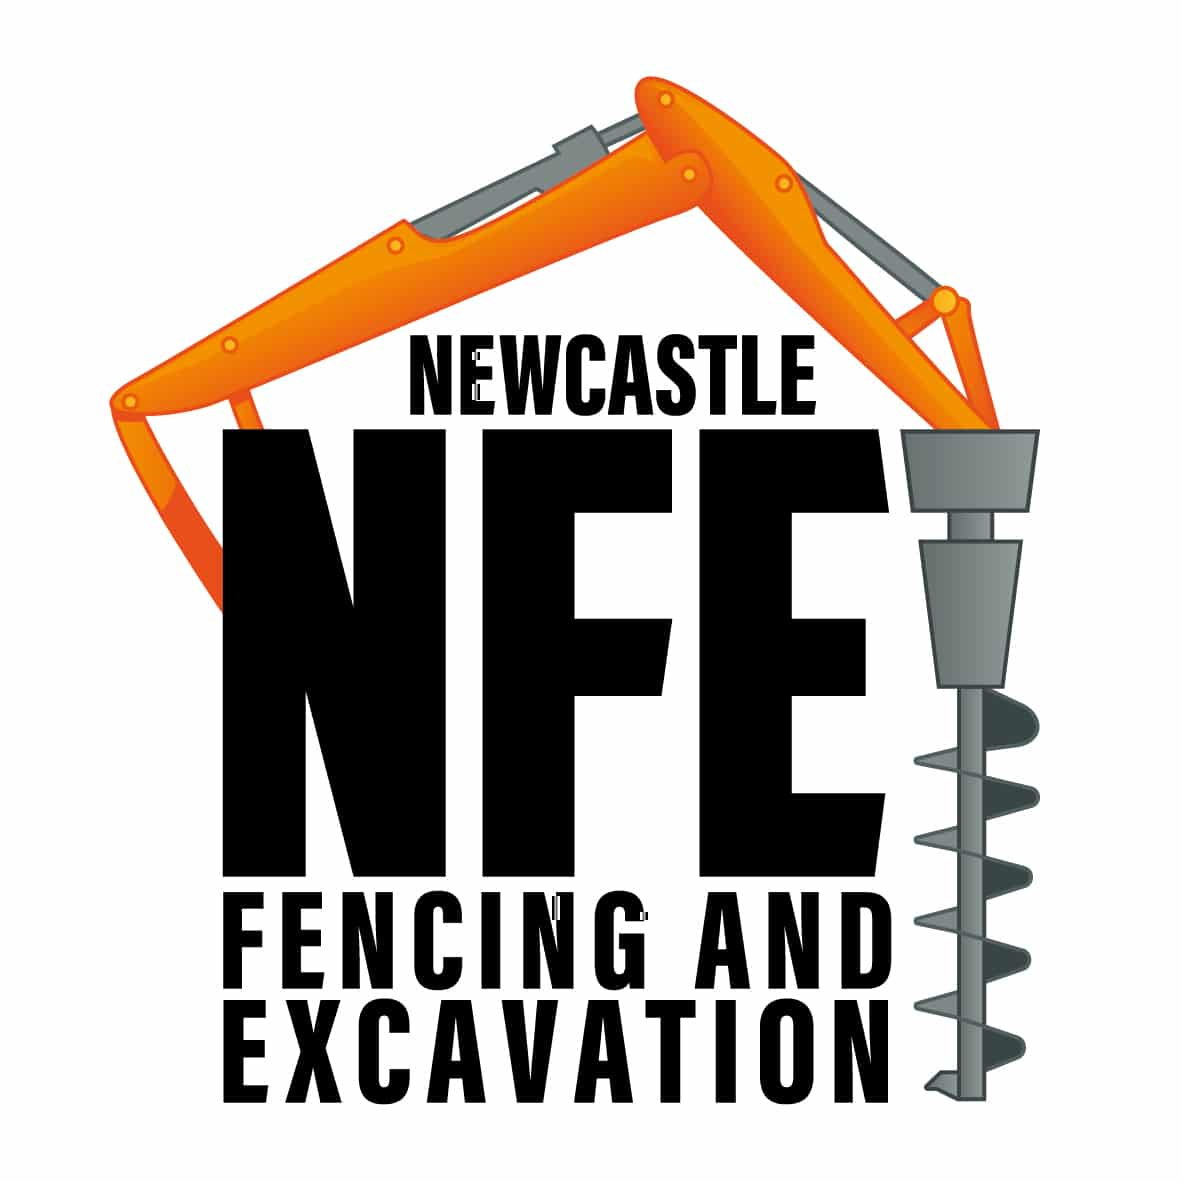 Newcastle Fencing and Excavation